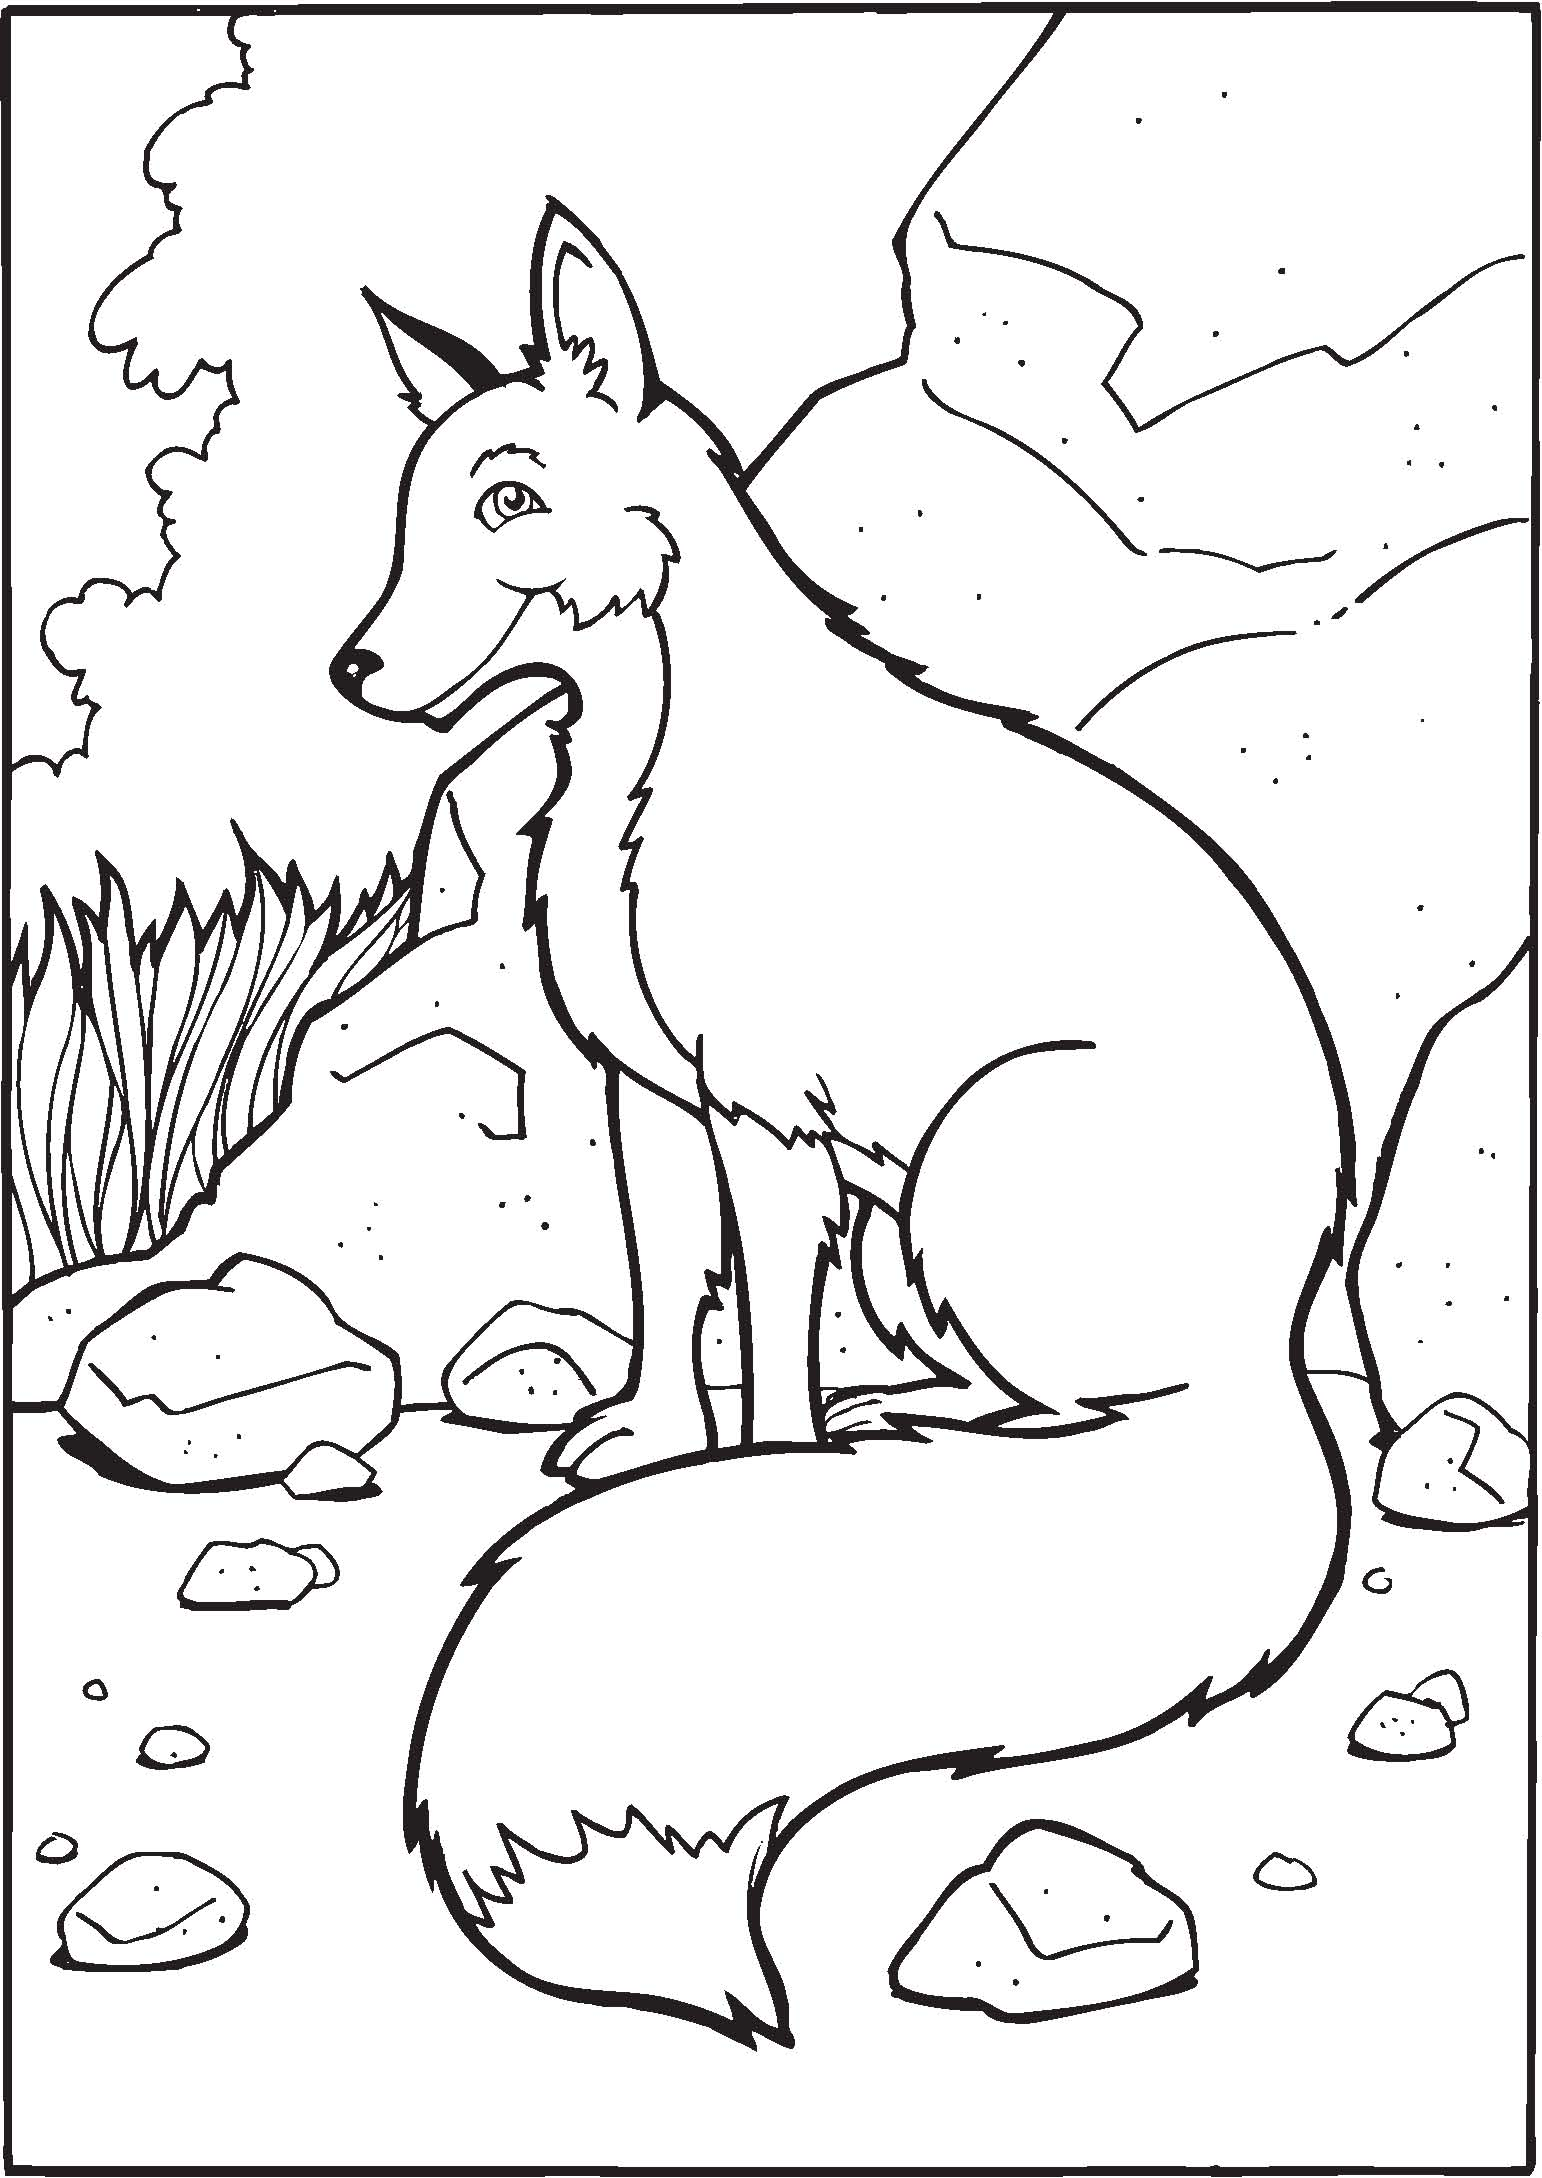 Geeky image for printable fox coloring pages